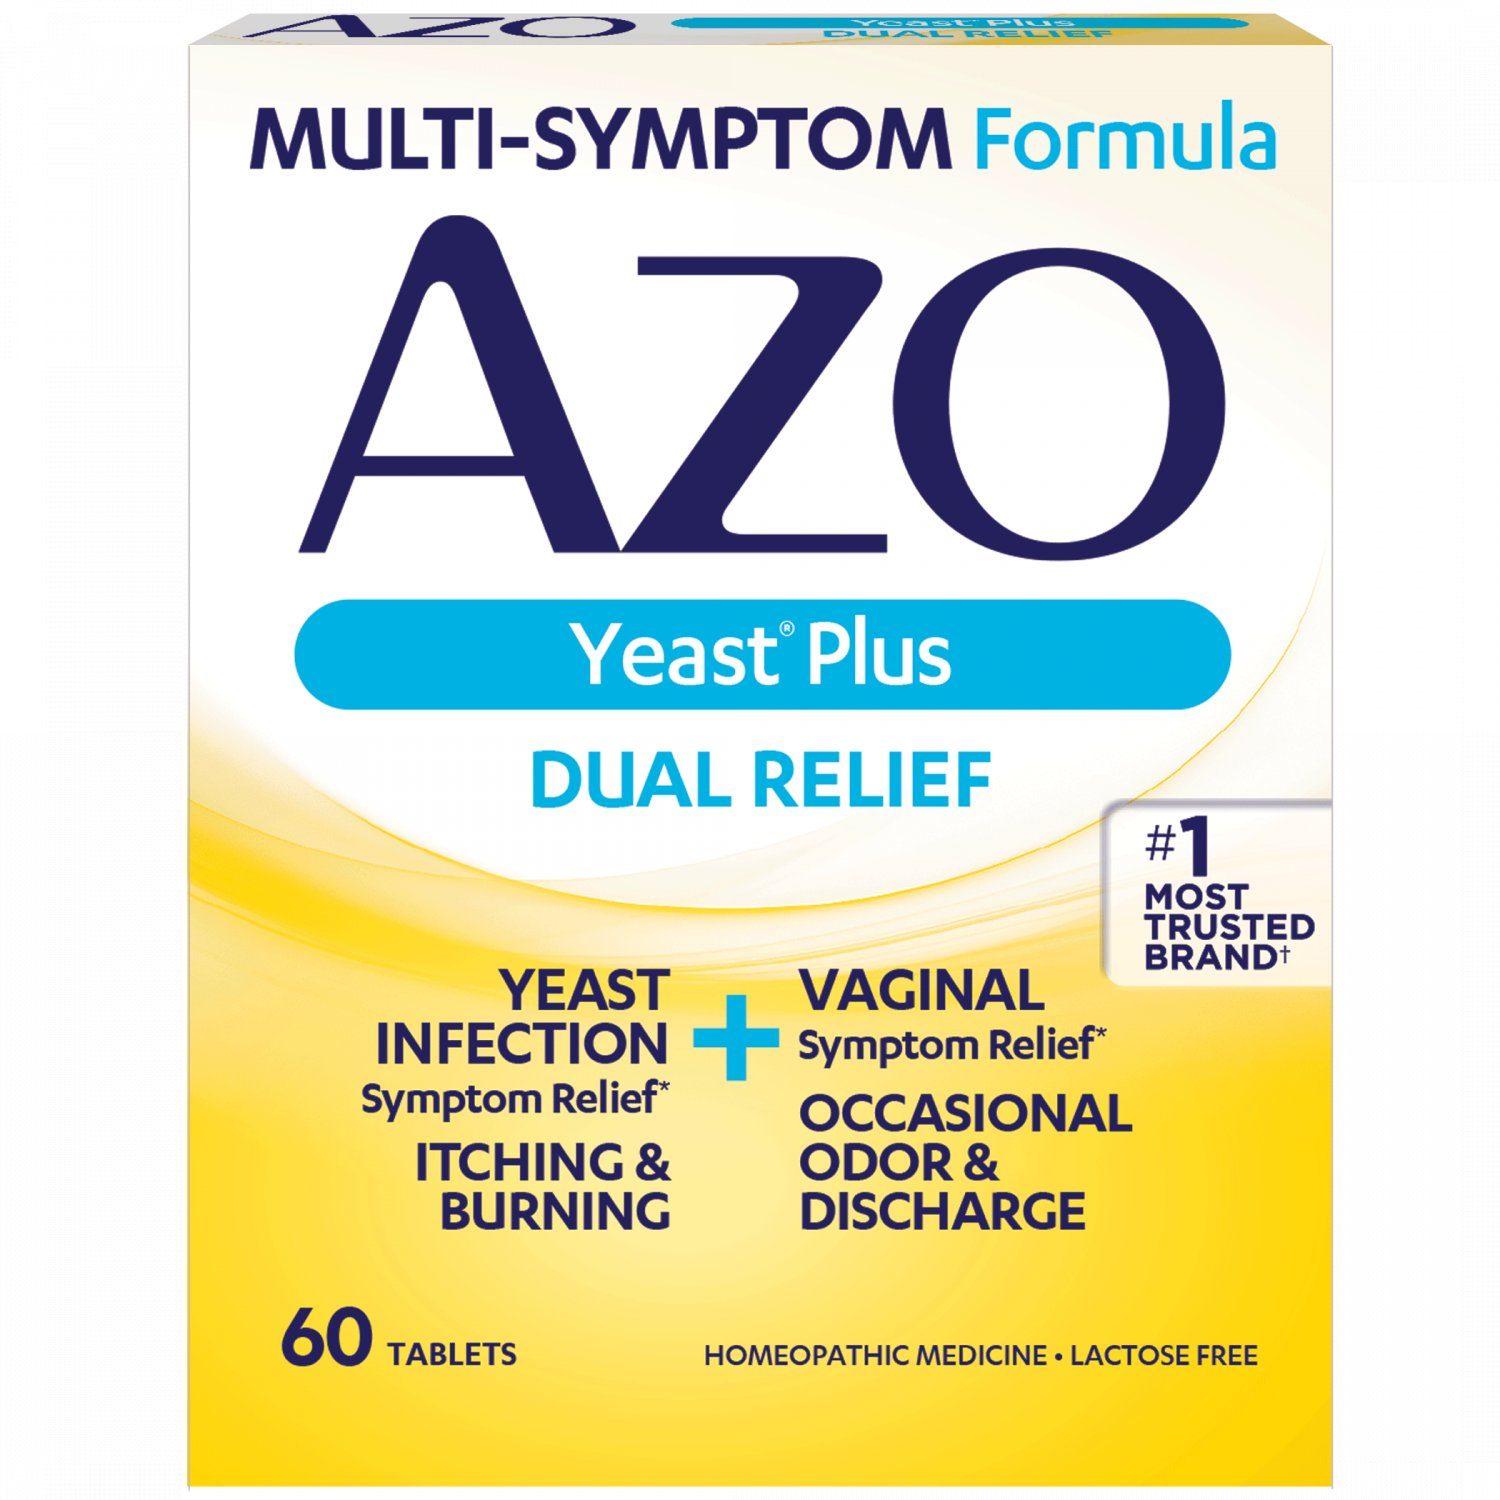 AZO Yeast Plus Dual Relief Yeast Infection + Vaginal Symptom Relief 60 Count